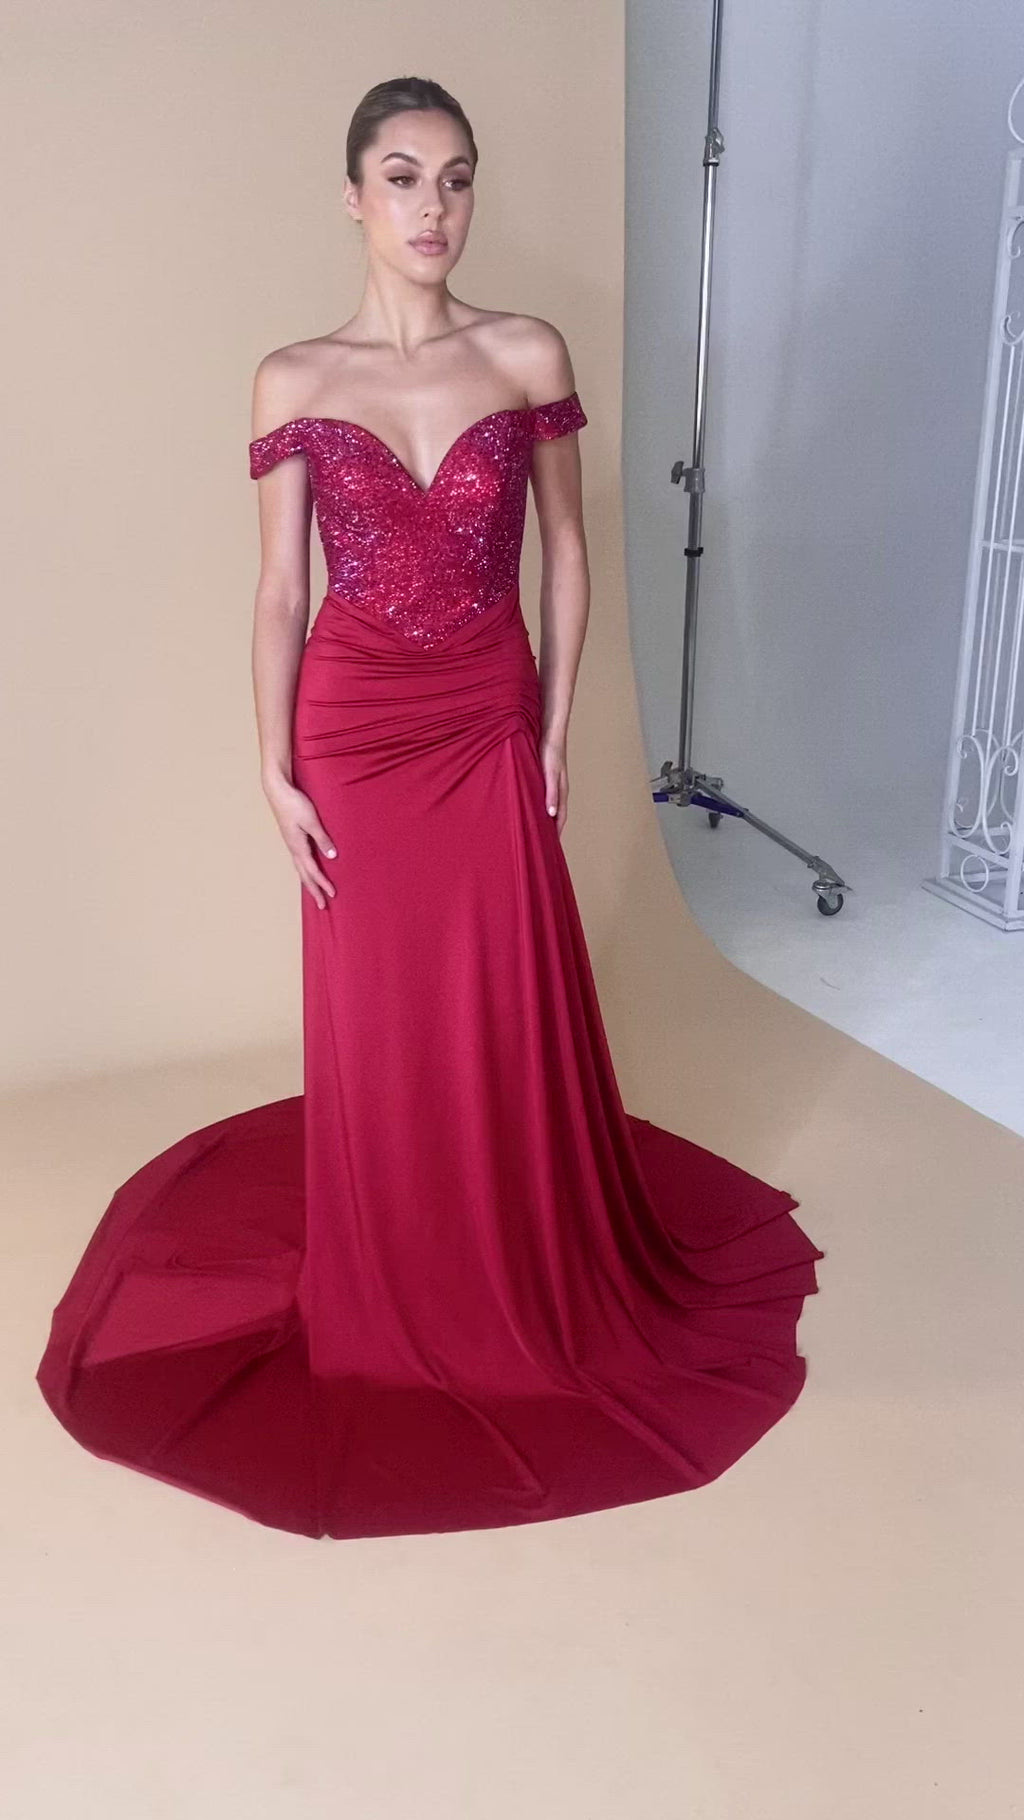 Portia & Scarlett Finola Gown PS21232 | Red Prom | Evening Gown Model Video MP4